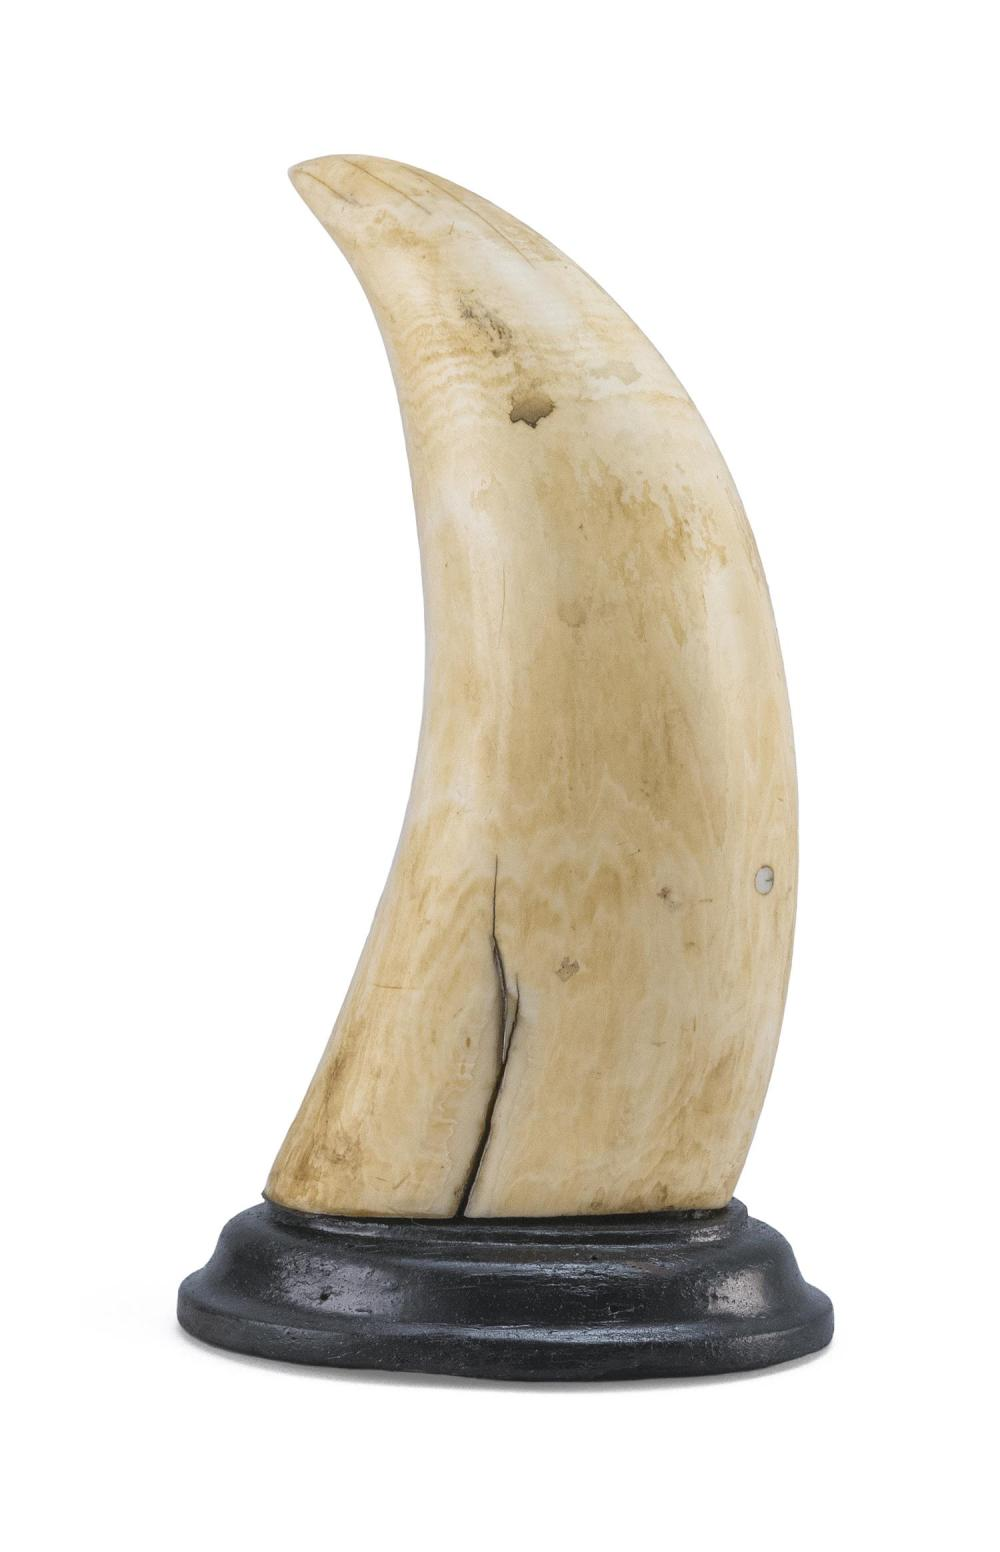 SCRIMSHAW WHALE'S TOOTH DEPICTING THE CIRCUS PERFORMER